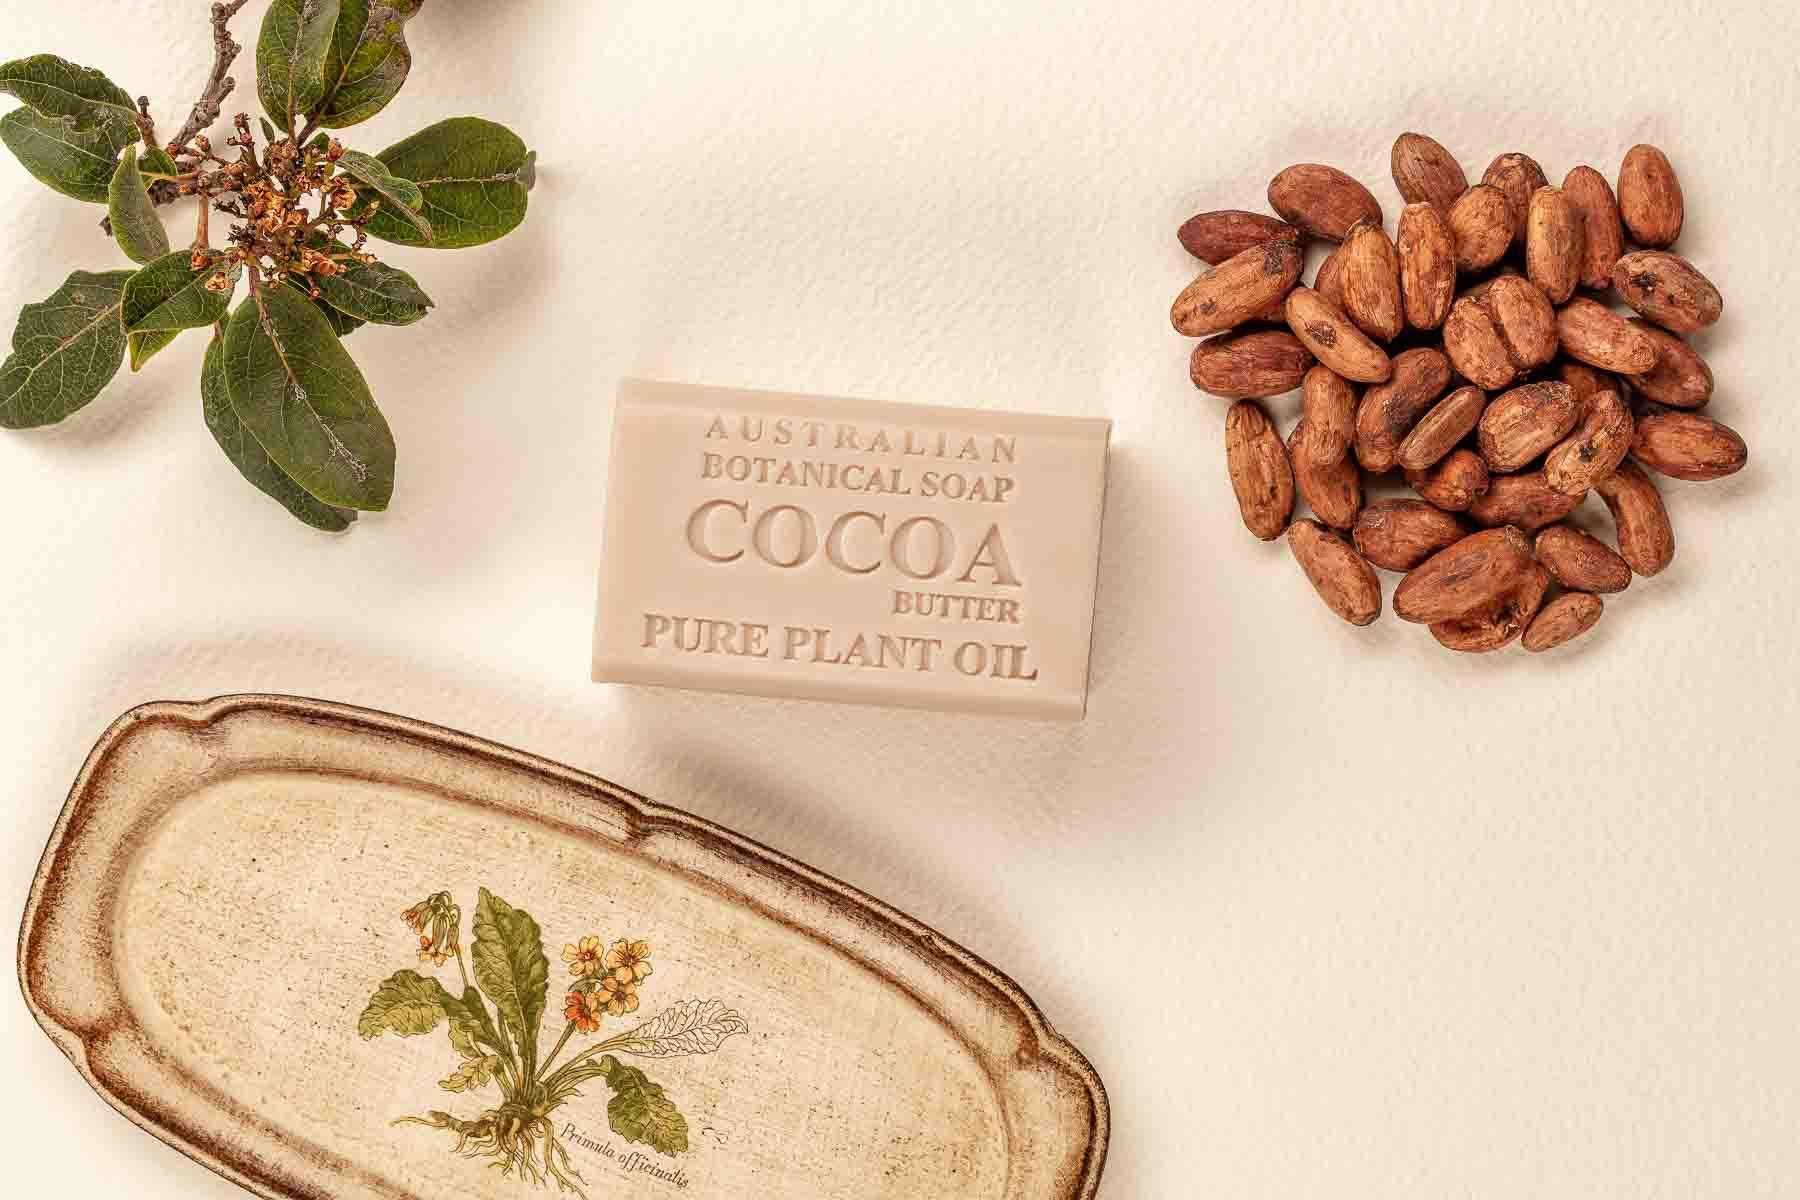 Australian Botanic Soap Cocoa with bean over the top view - Lifestyle advertising product photo